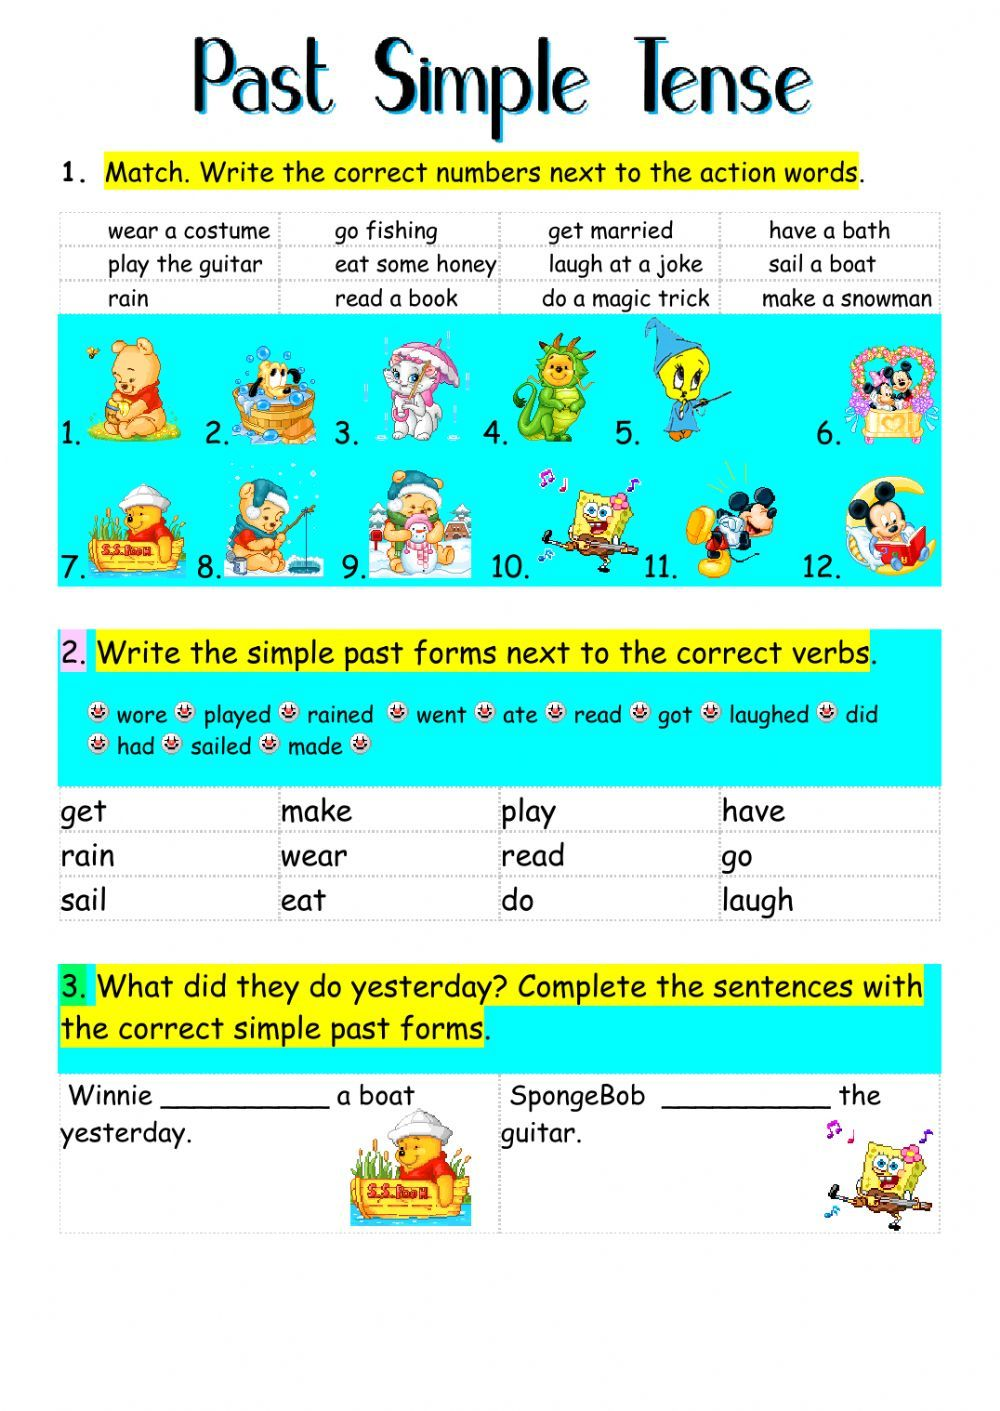 past simple interactive and downloadable worksheet. You